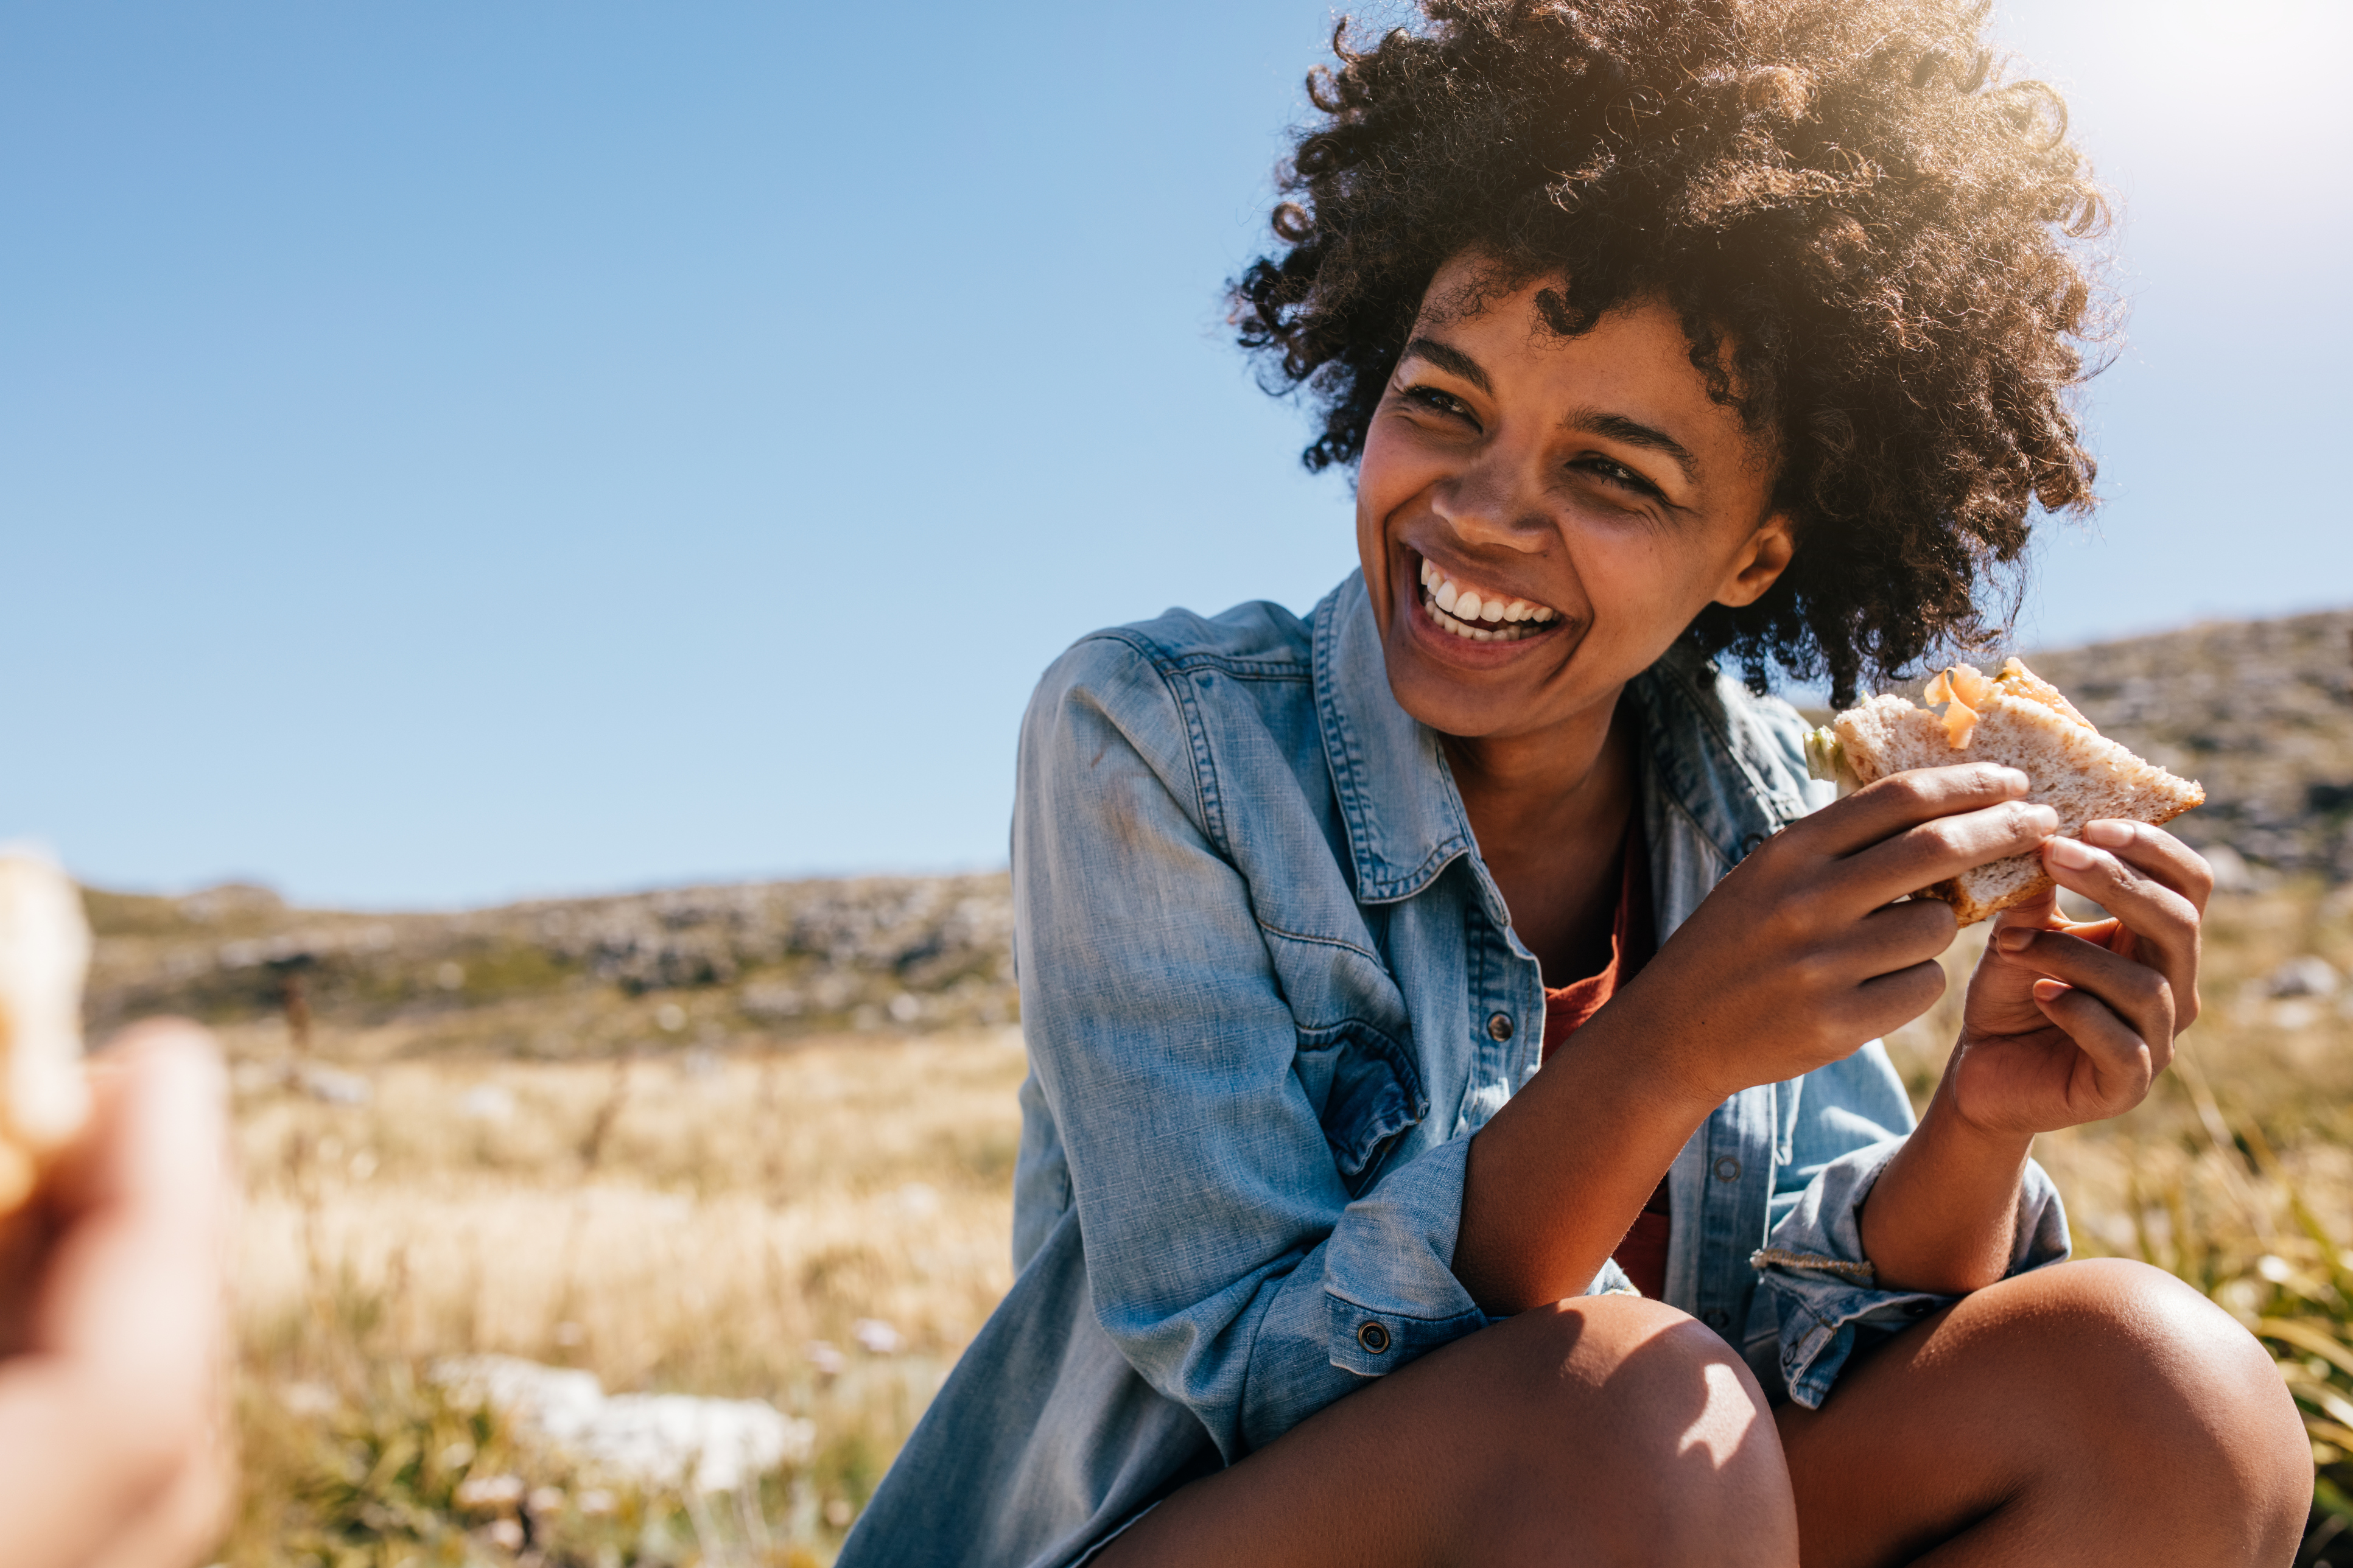 Generic photo of young woman looking happy eating a sandwich outdoors (Thinkstock/PA)